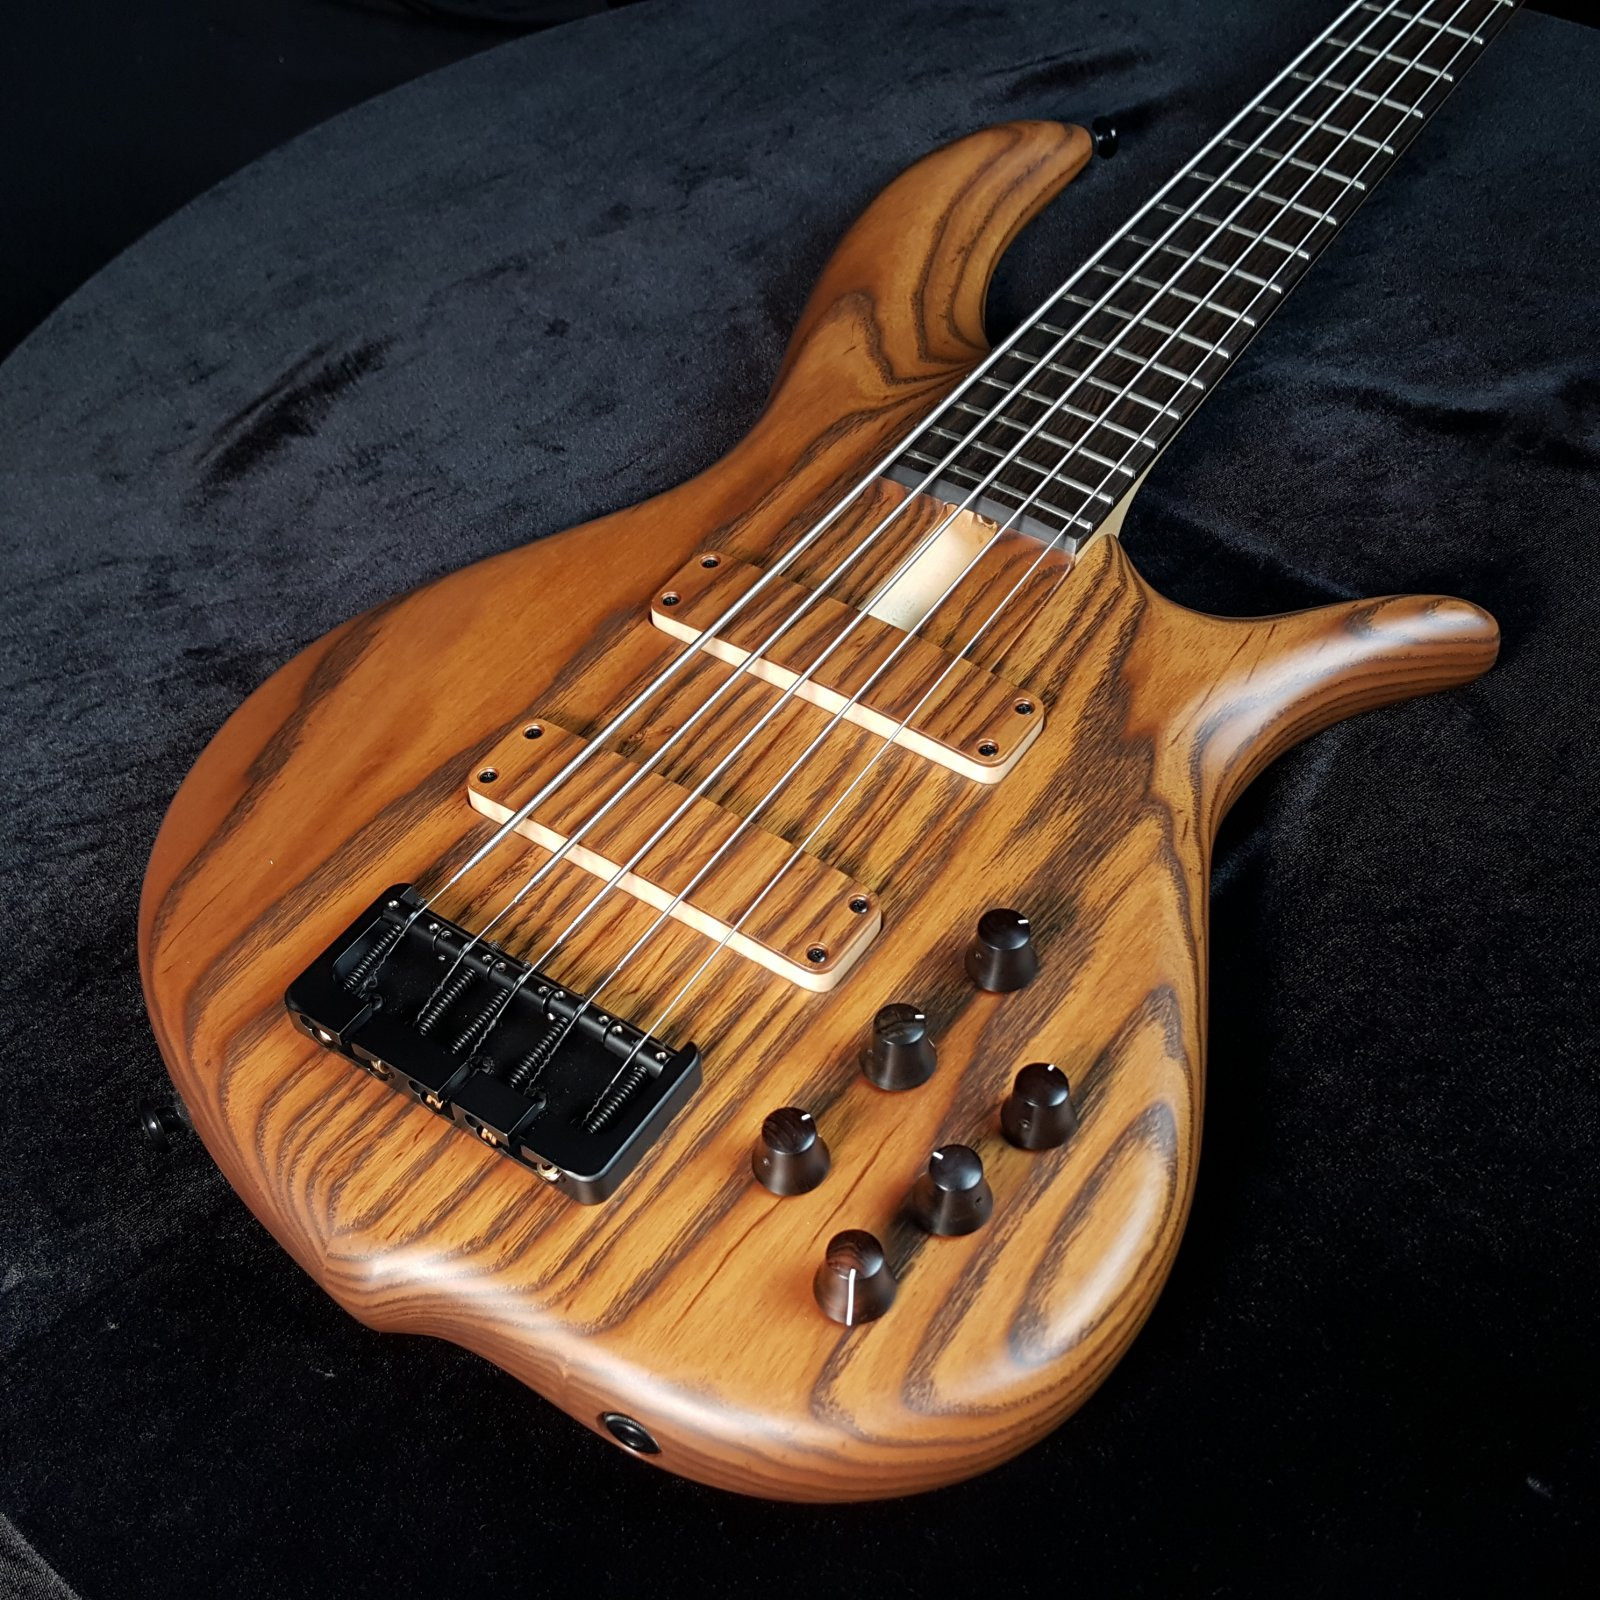 F Bass BN5 Roasted Ash Natural 5 String with Bag